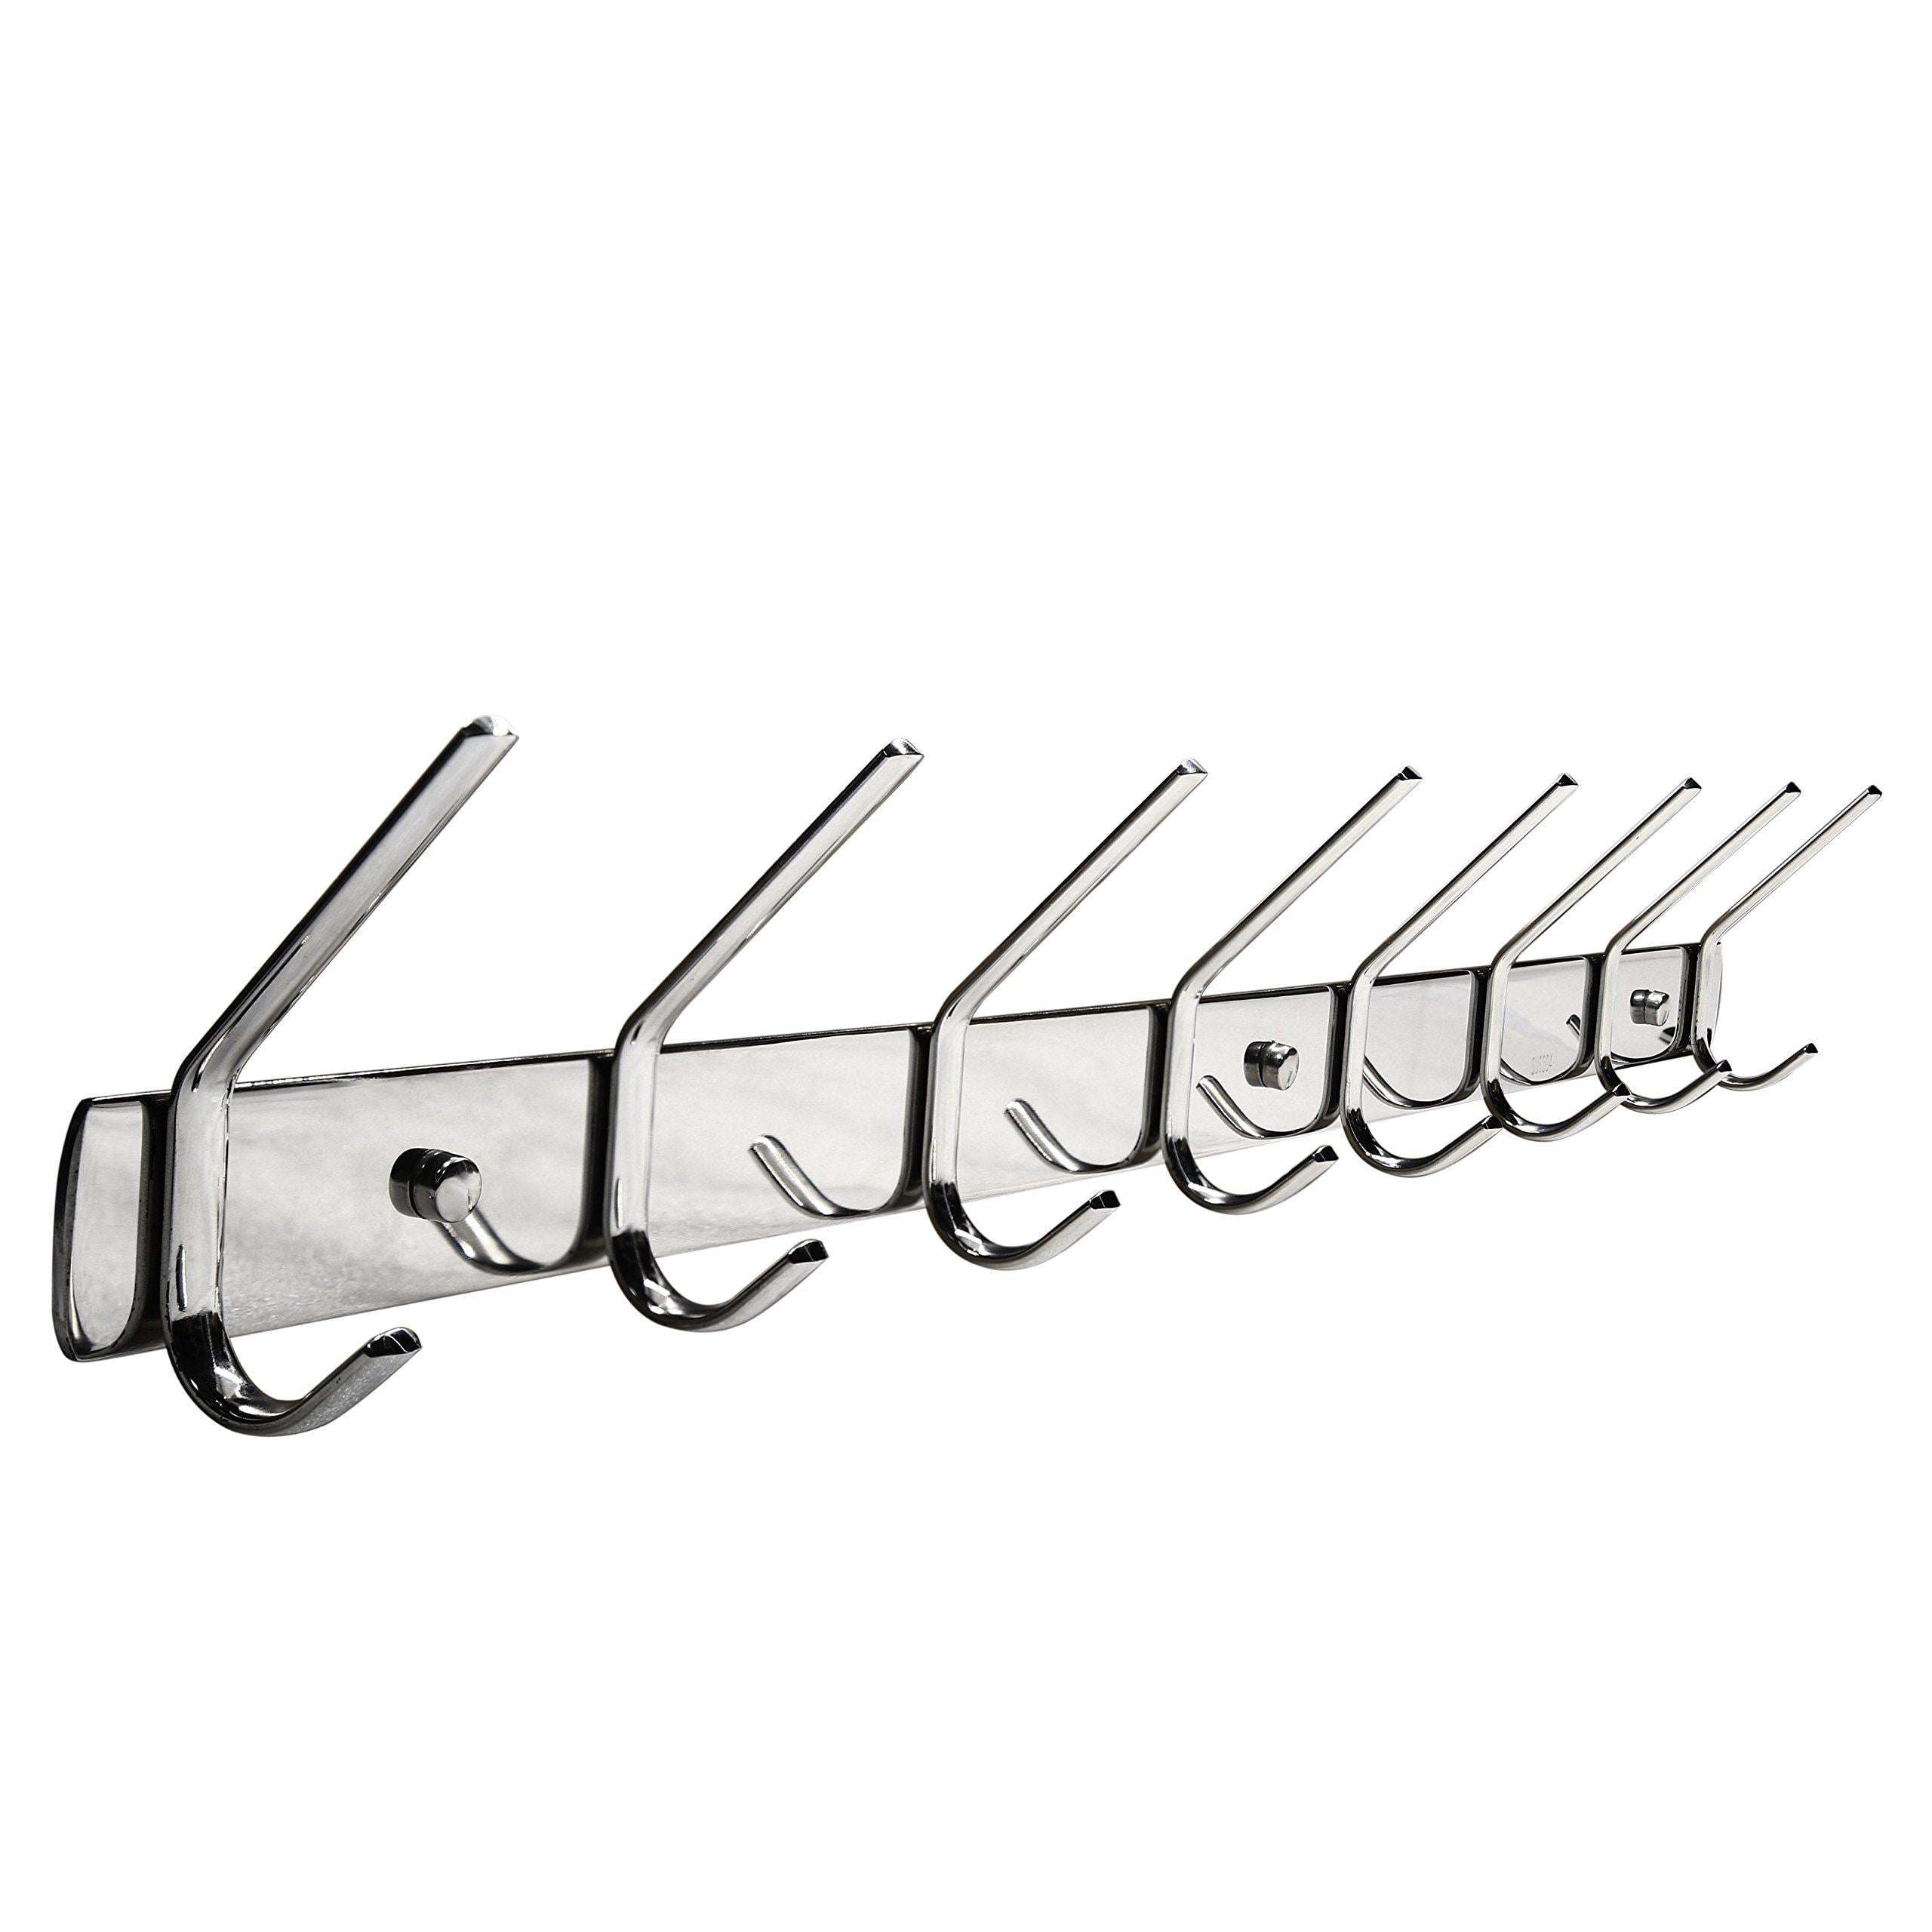 Discover the webi sus304 heavy duty 8 peg large coat hat hooks robe bath kitchen towel utensil utility garment rack hanger rail holder wall mount bedroom entryway garage bathroom home organization polished